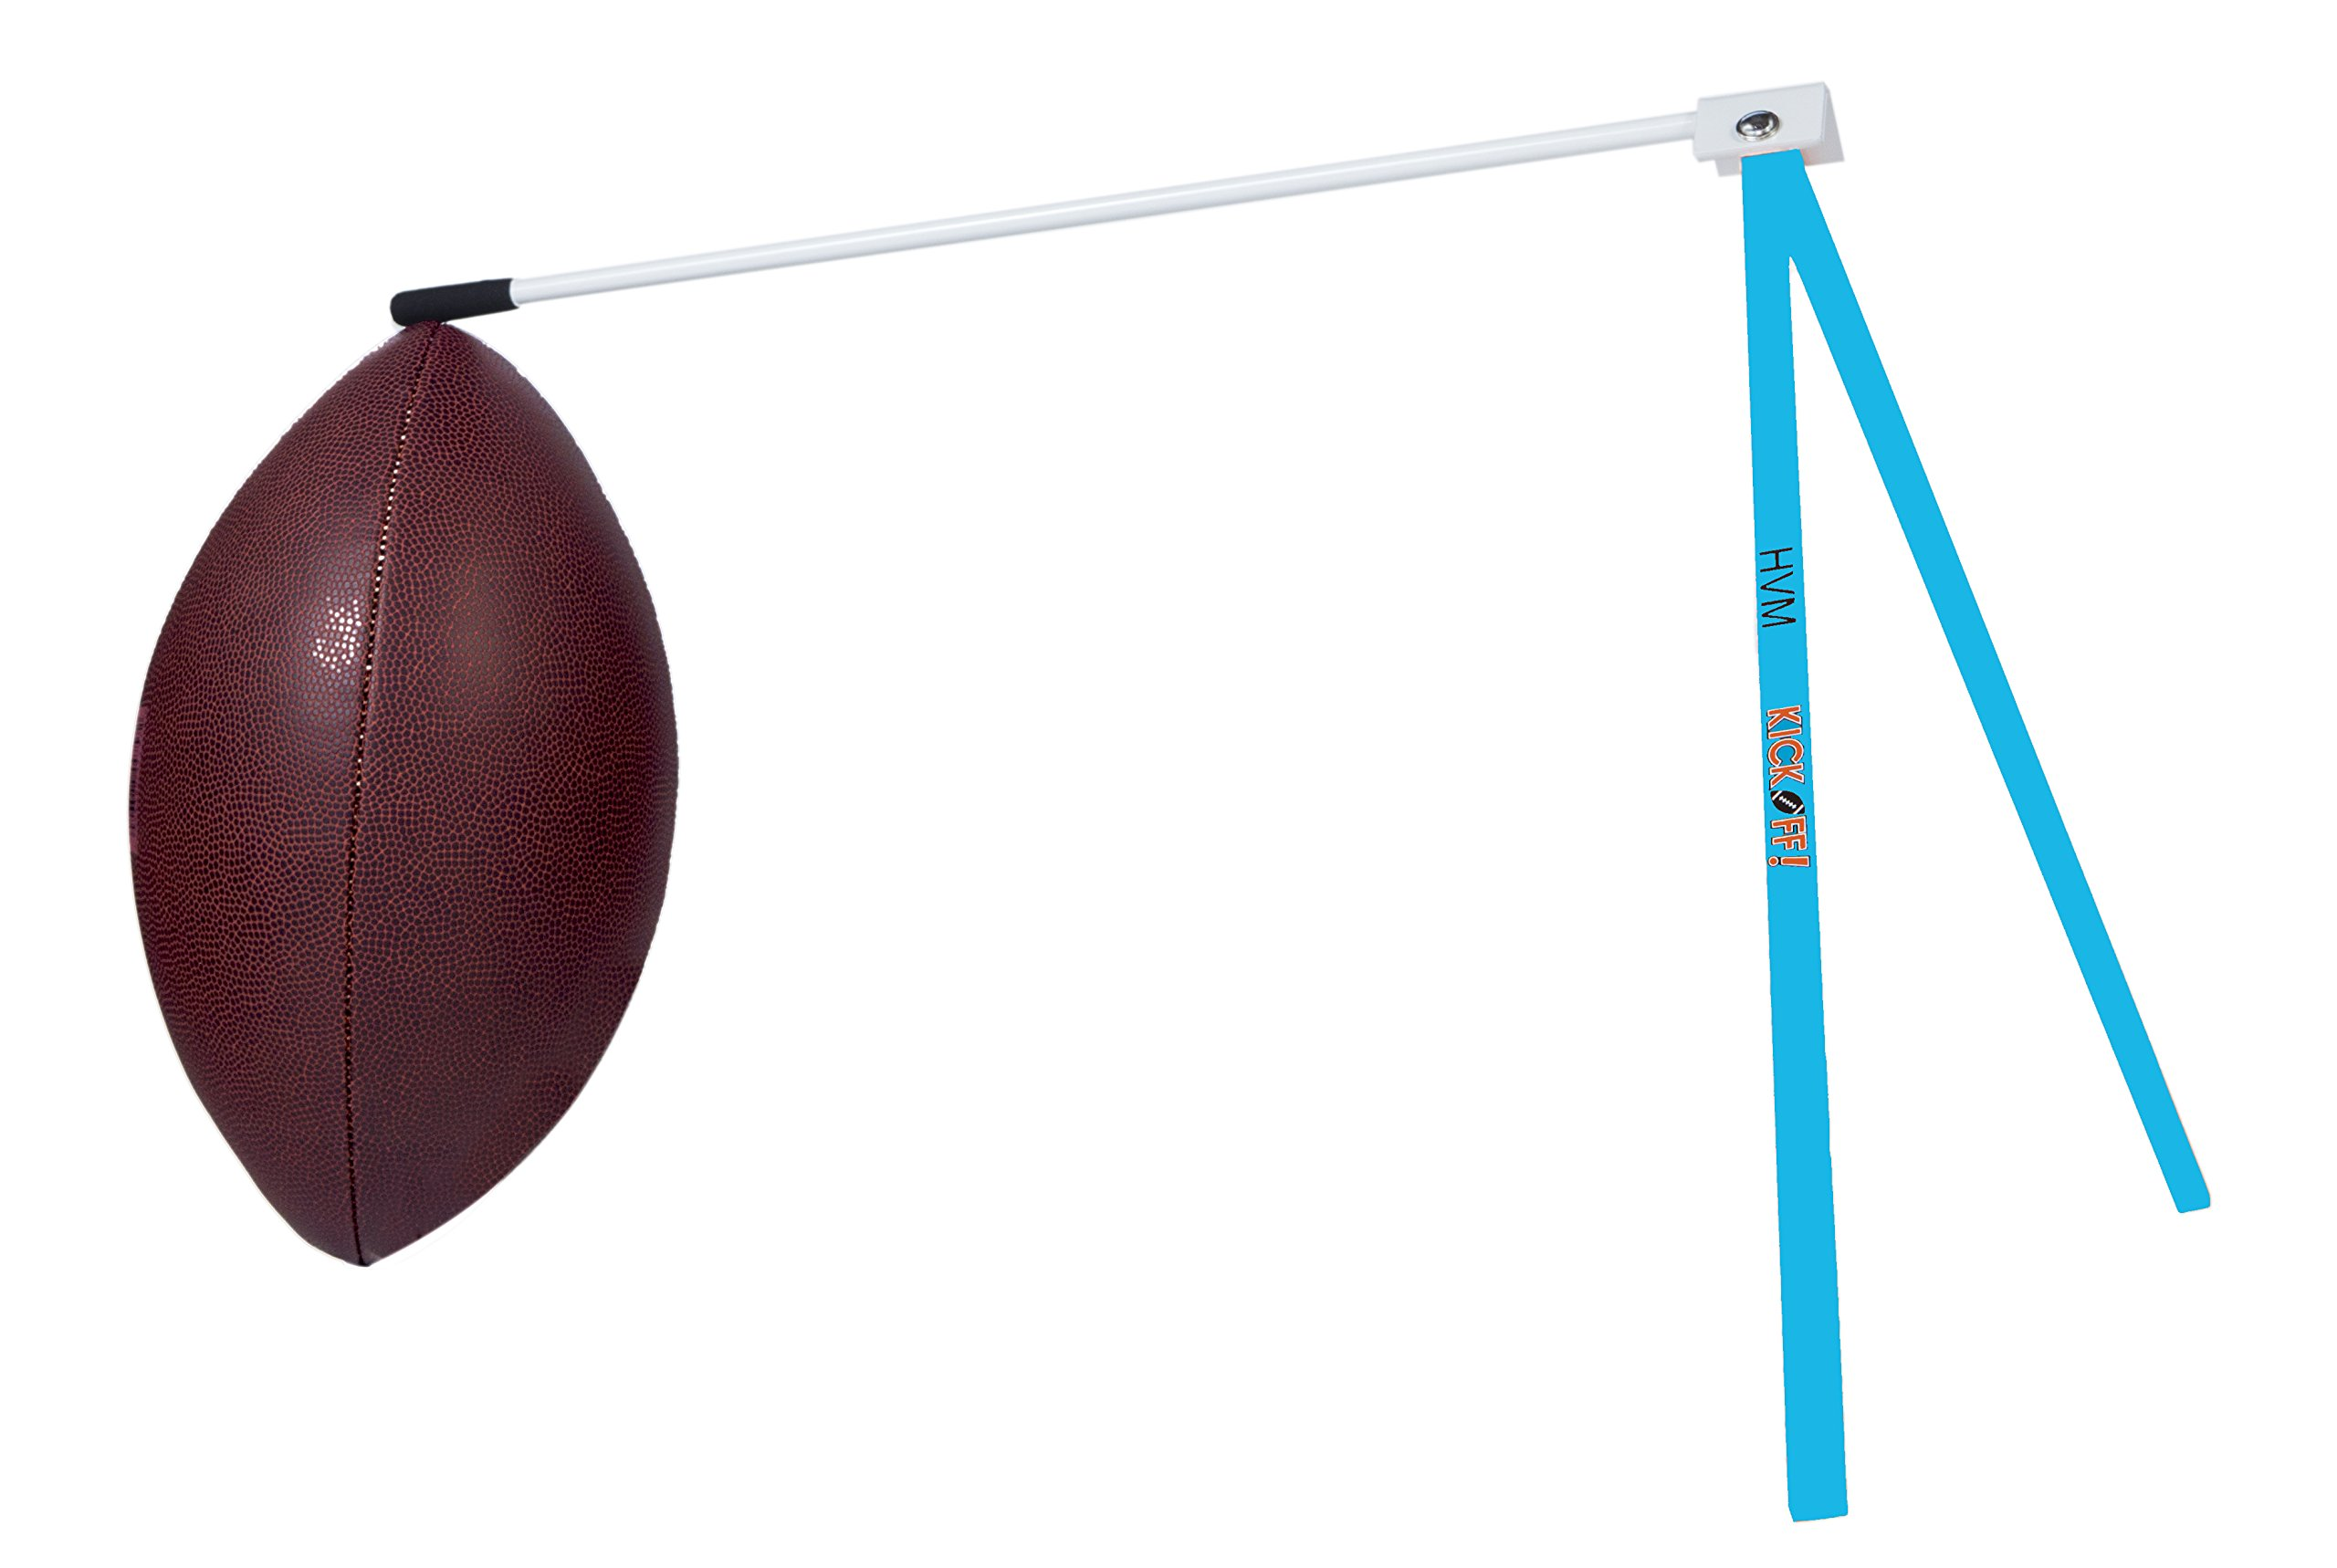 Kickoff! Football Holder --- Football Place Holder Kicking Tee -- Use with Foot ball Field Goal Post or Football Kicking Net (Blue and White)